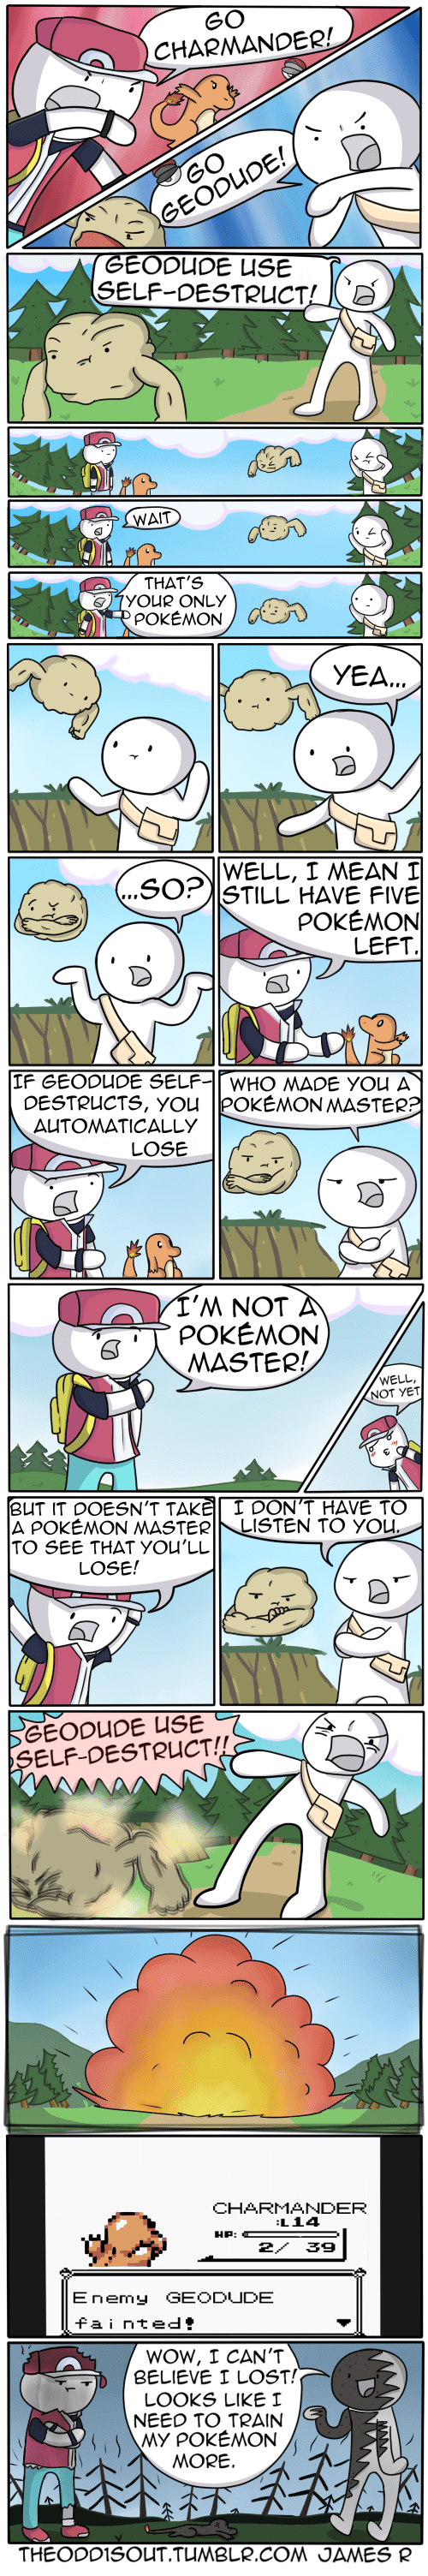 Pokémon red comics selfdestruct web comics